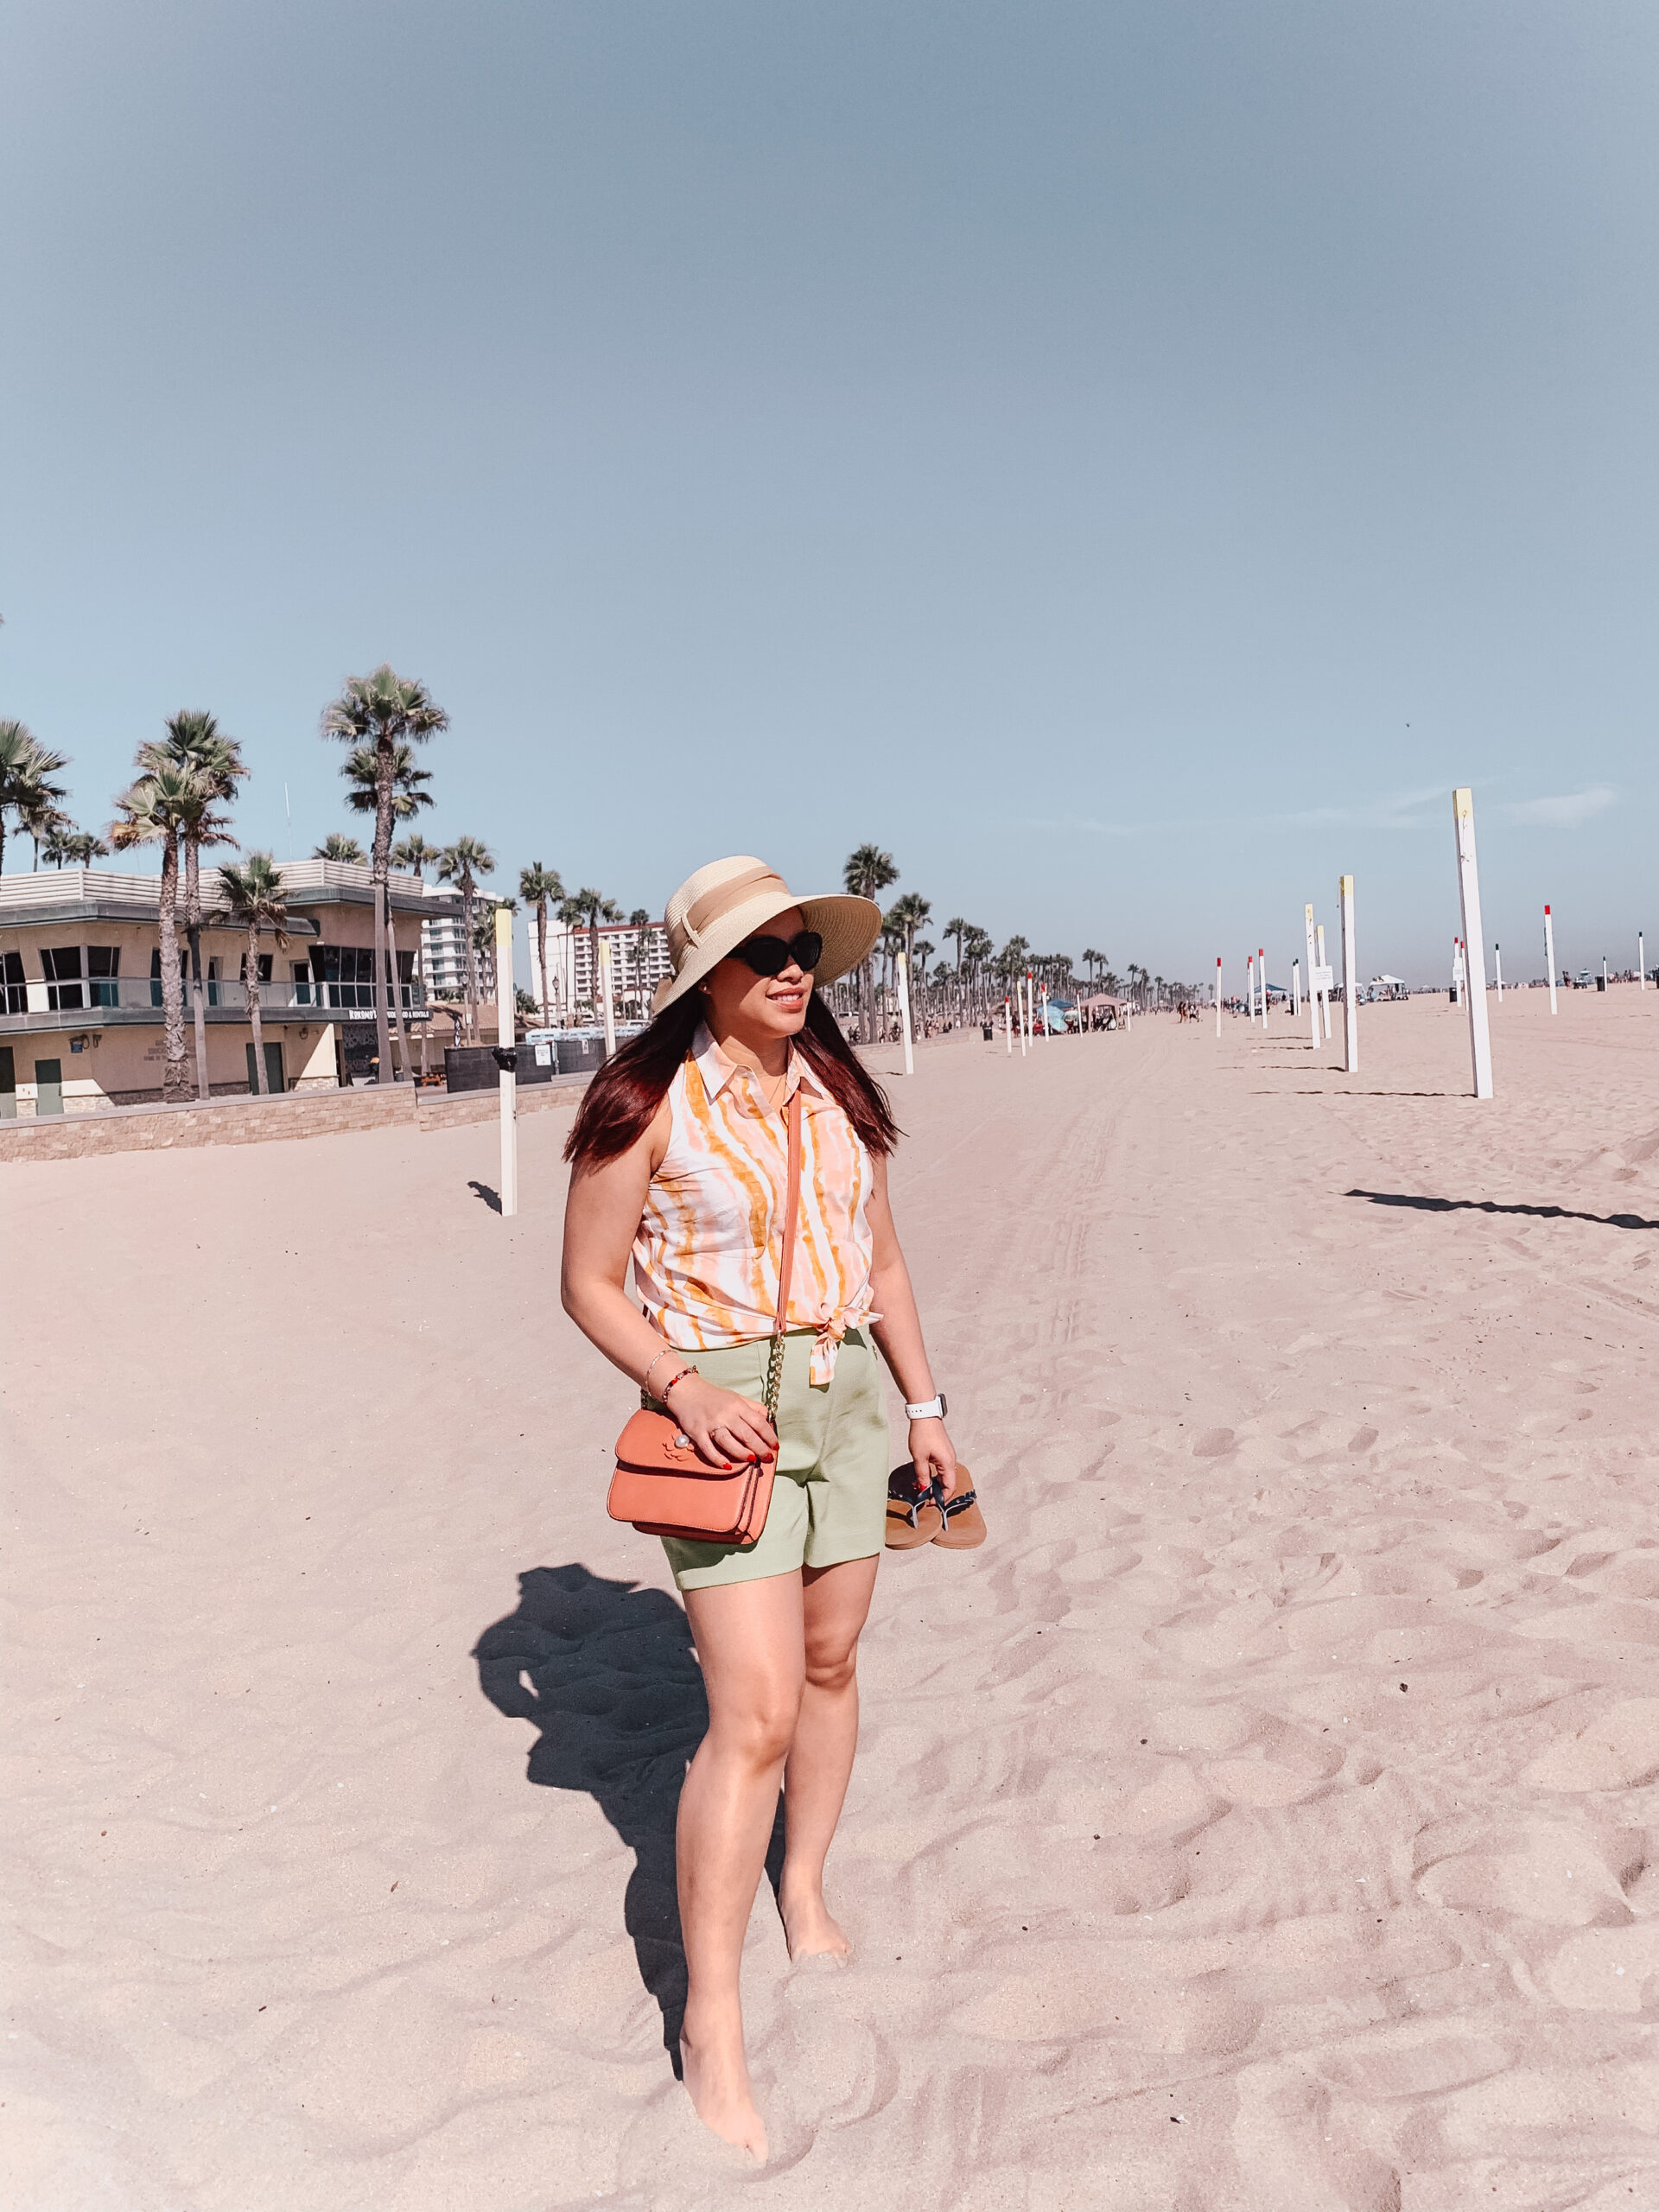 pslilyboutique-on-instagram-pinterest-spring-summer-2020-outfit-ideas-huntington-beach-california-IMG_1086